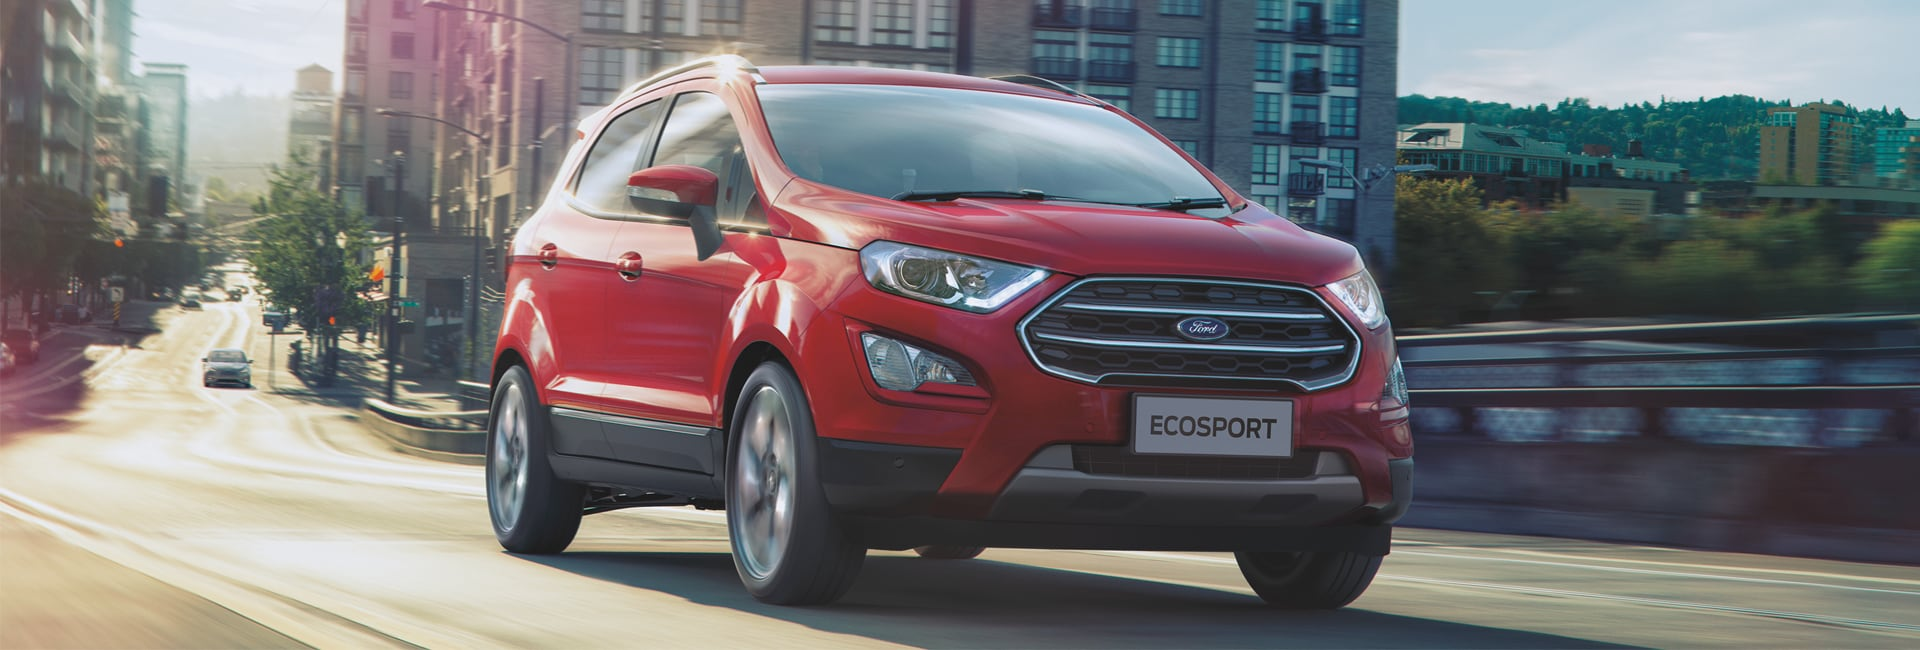 Ford EcoSport Exterior Vehicle Features